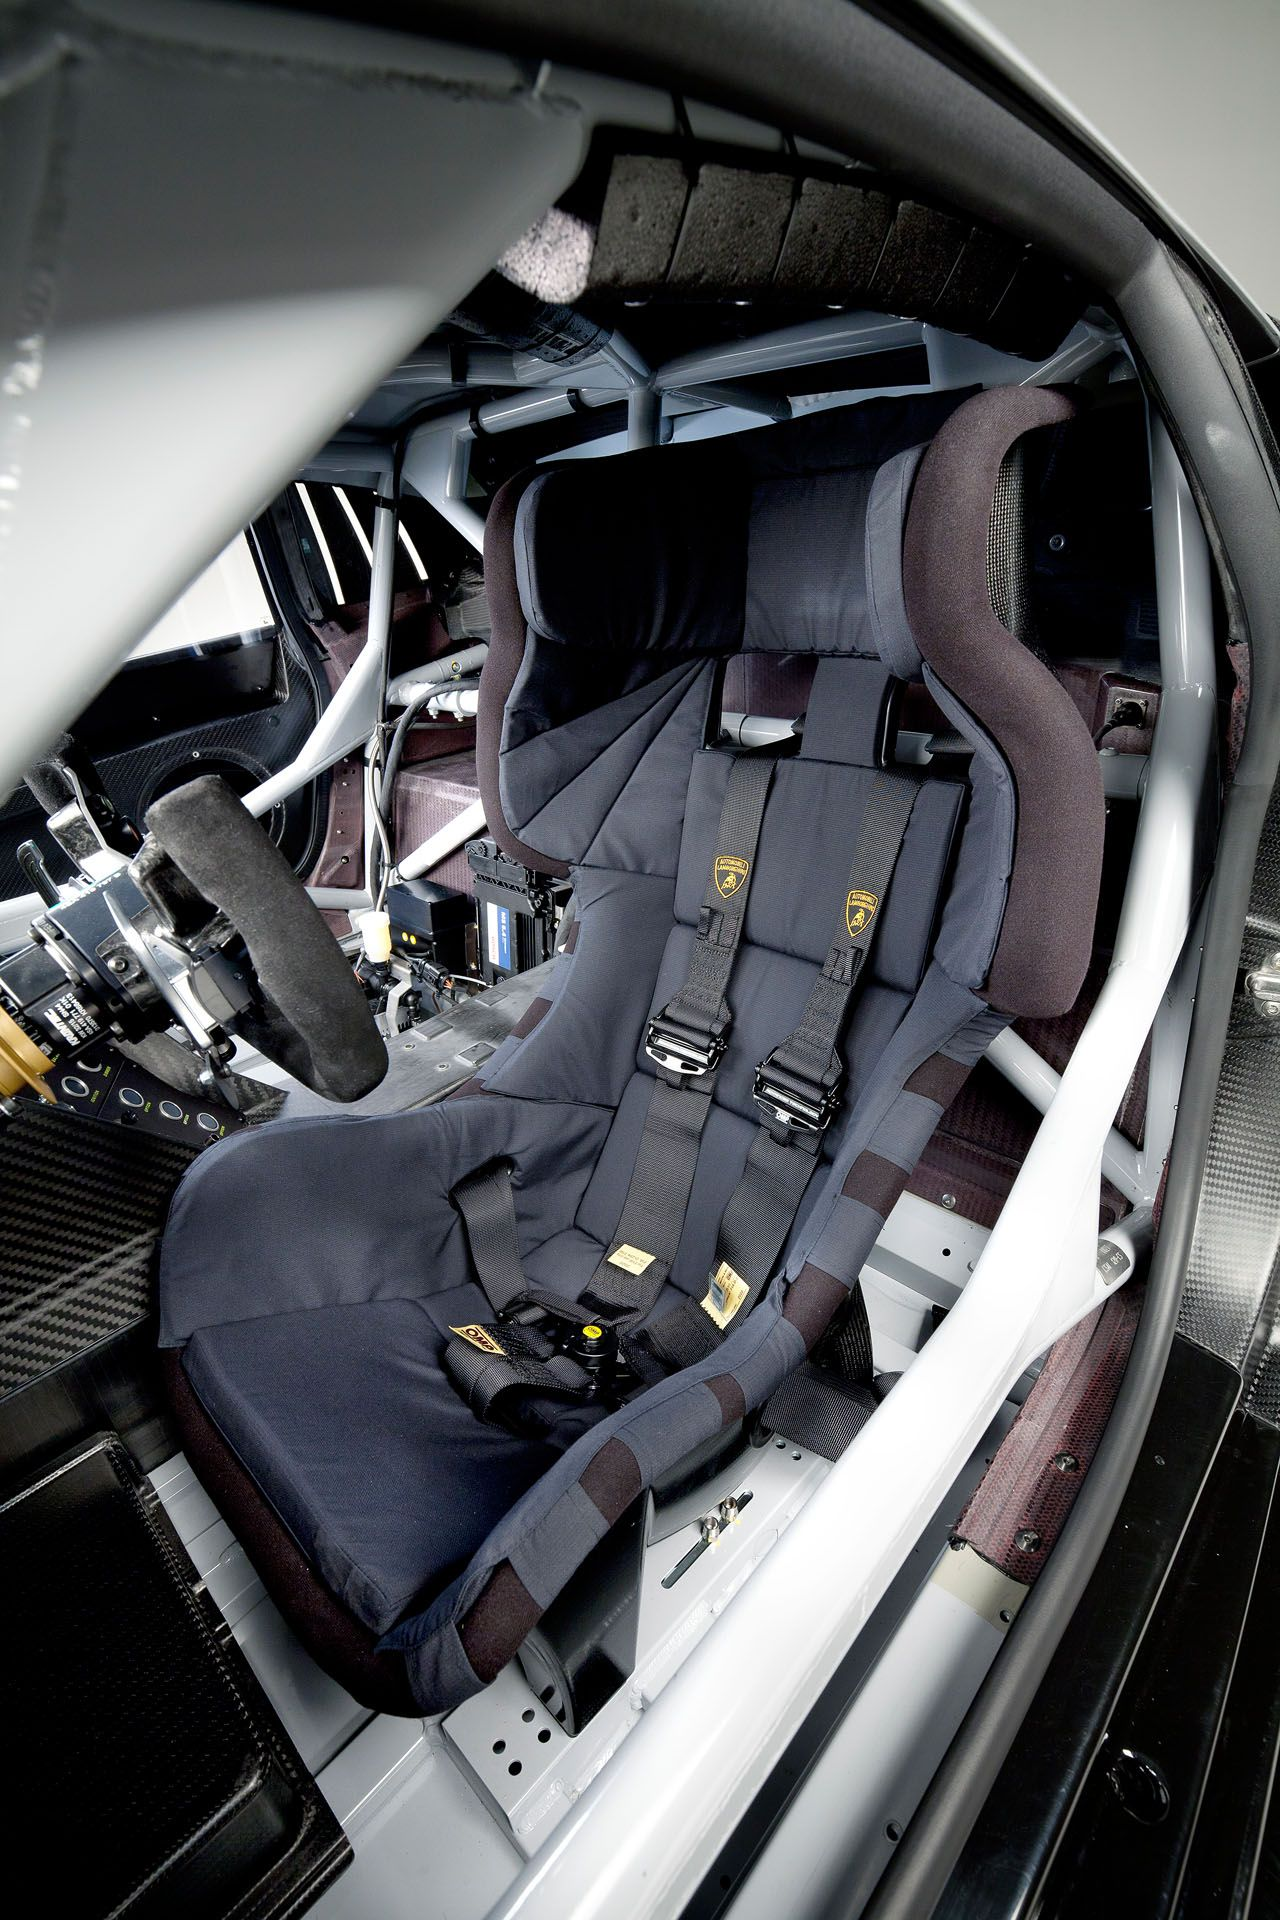 Very Impressive Seat Inside The Lamborghini Huracan GT3 Race Car